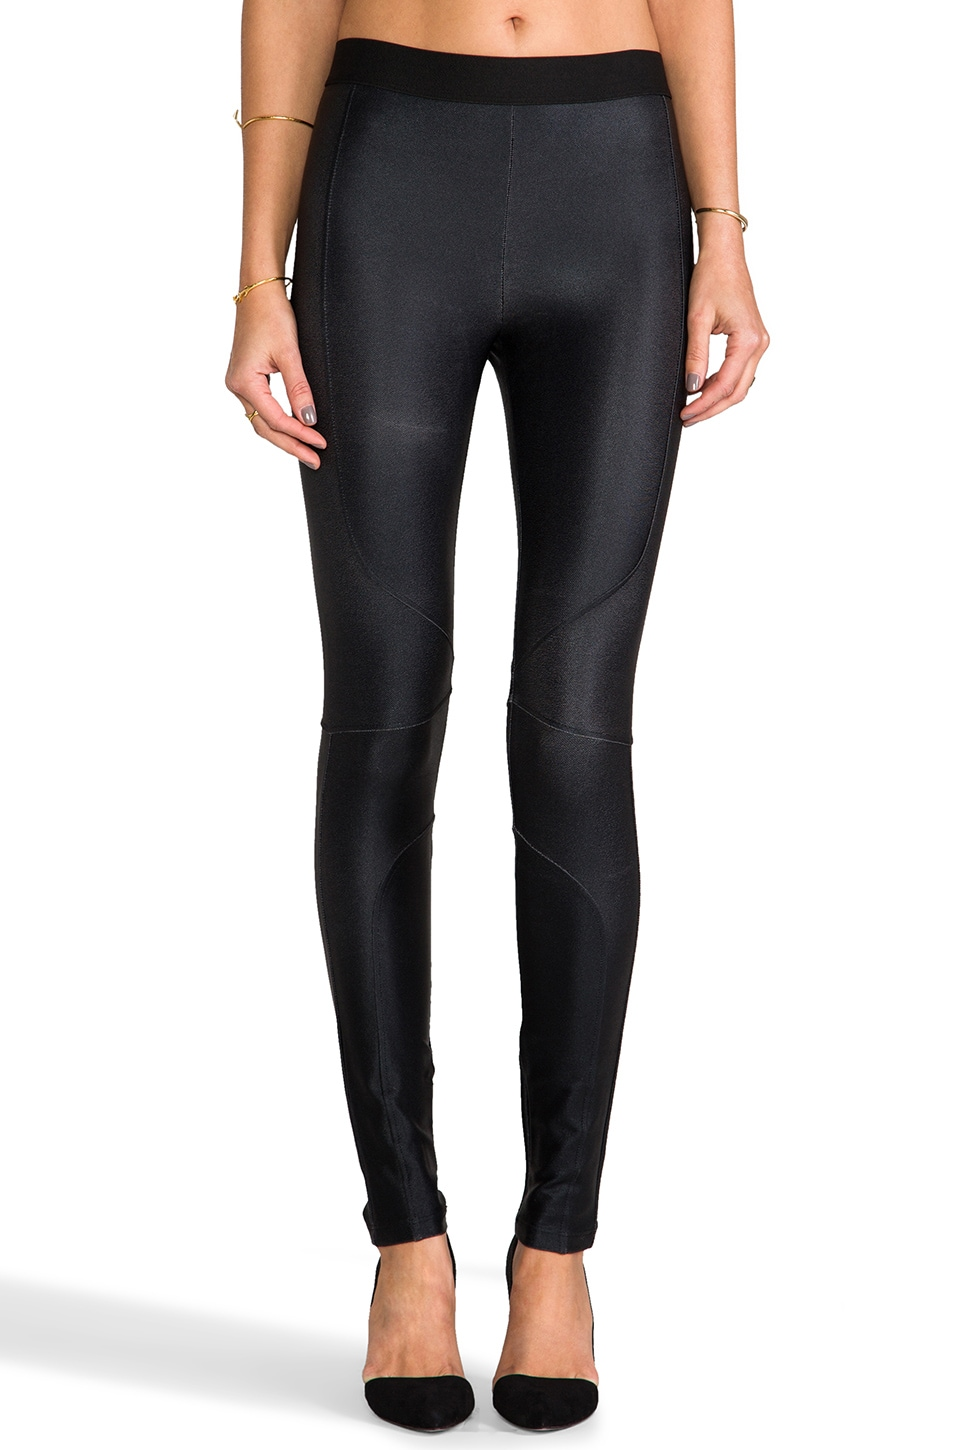 David Lerner Metallic Seamed Legging in Black